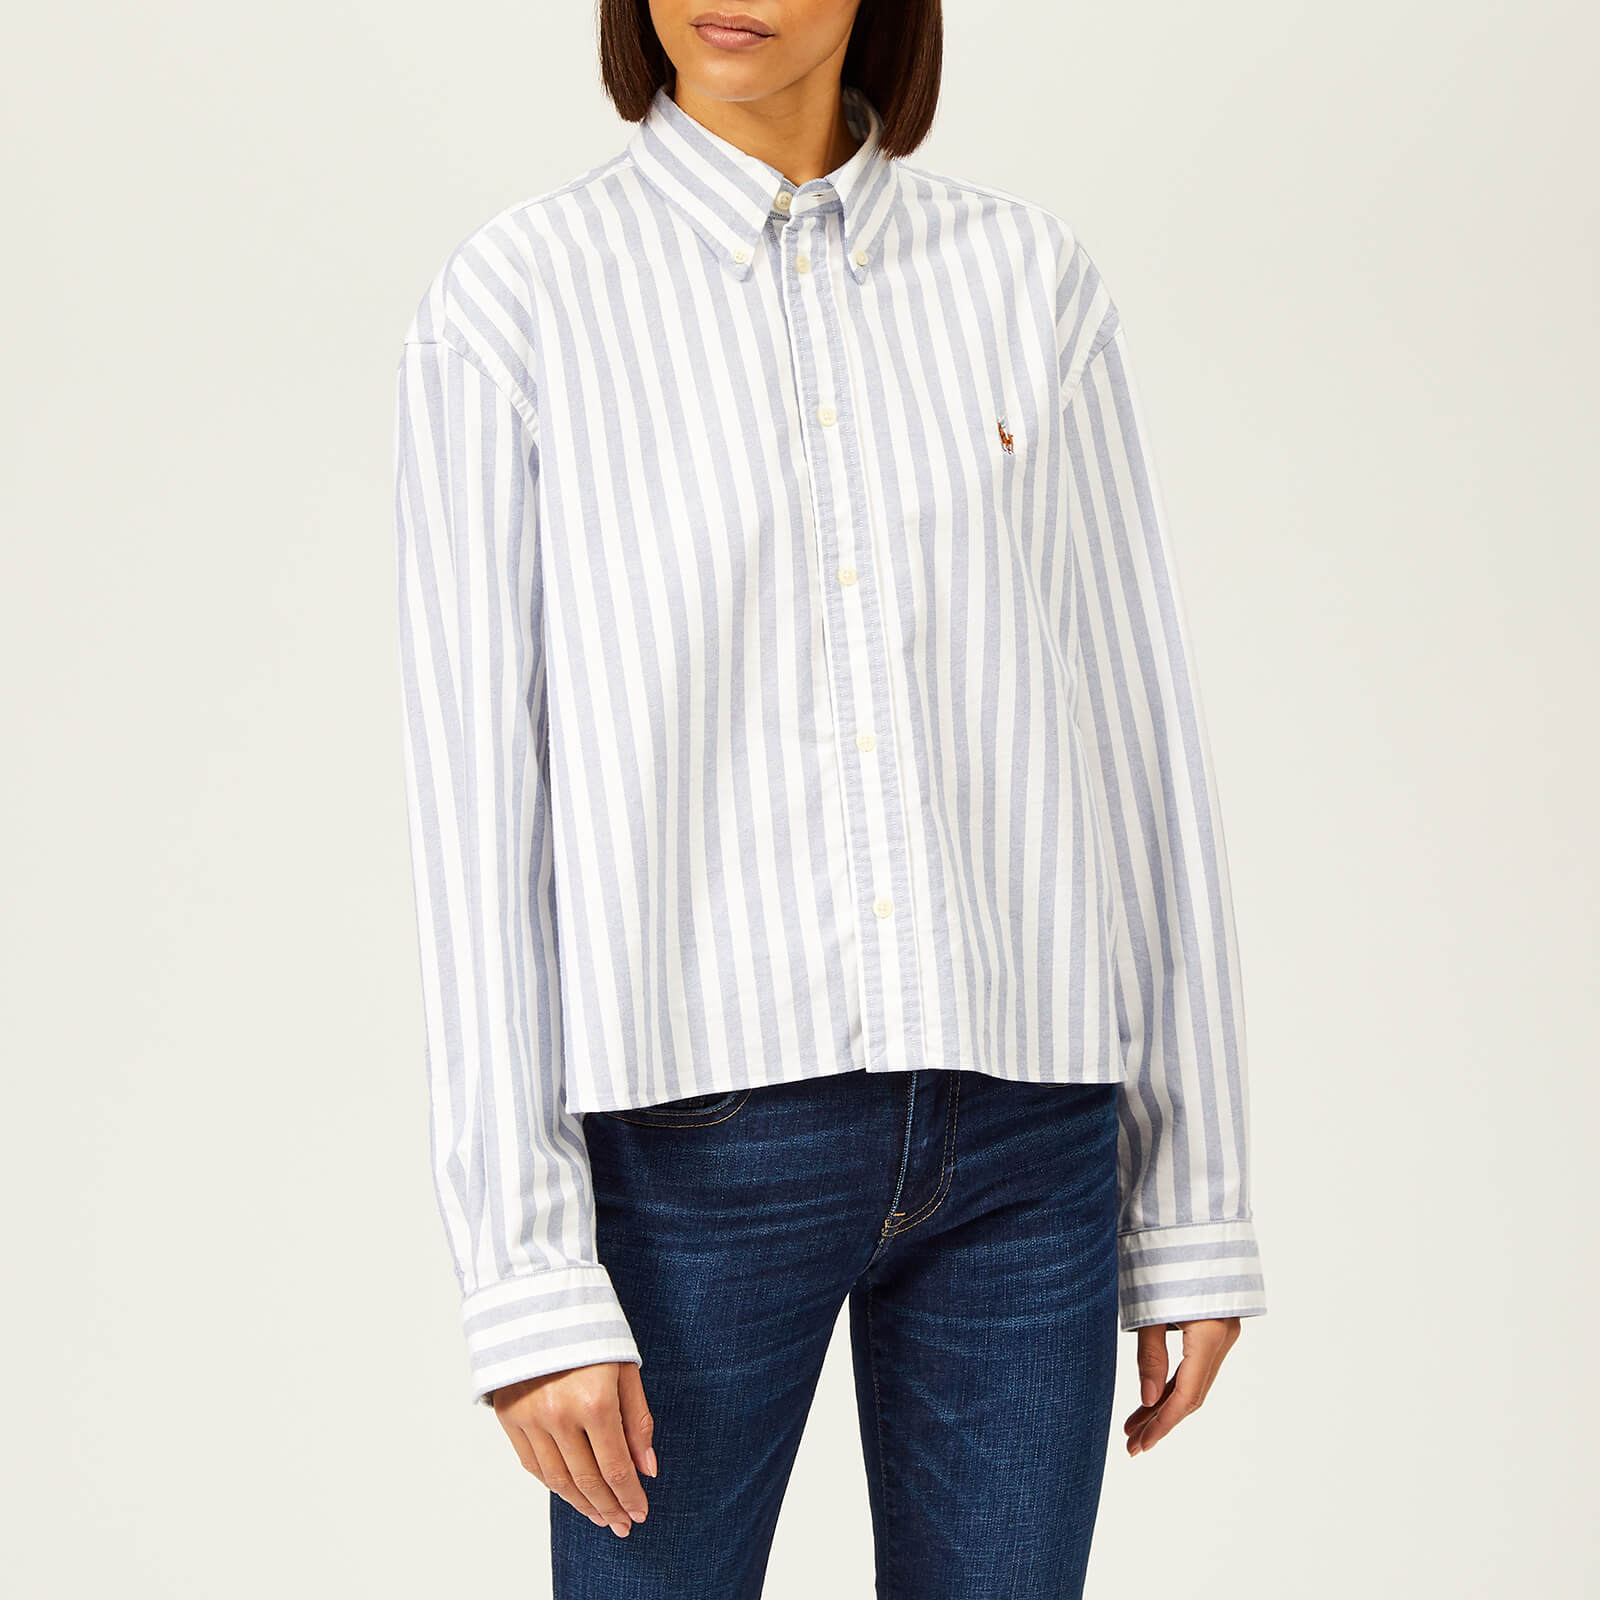 84da1b4e66 Polo Ralph Lauren Women's Cropped Oversized Cotton Oxford Shirt - White/Blue  - Free UK Delivery over £50